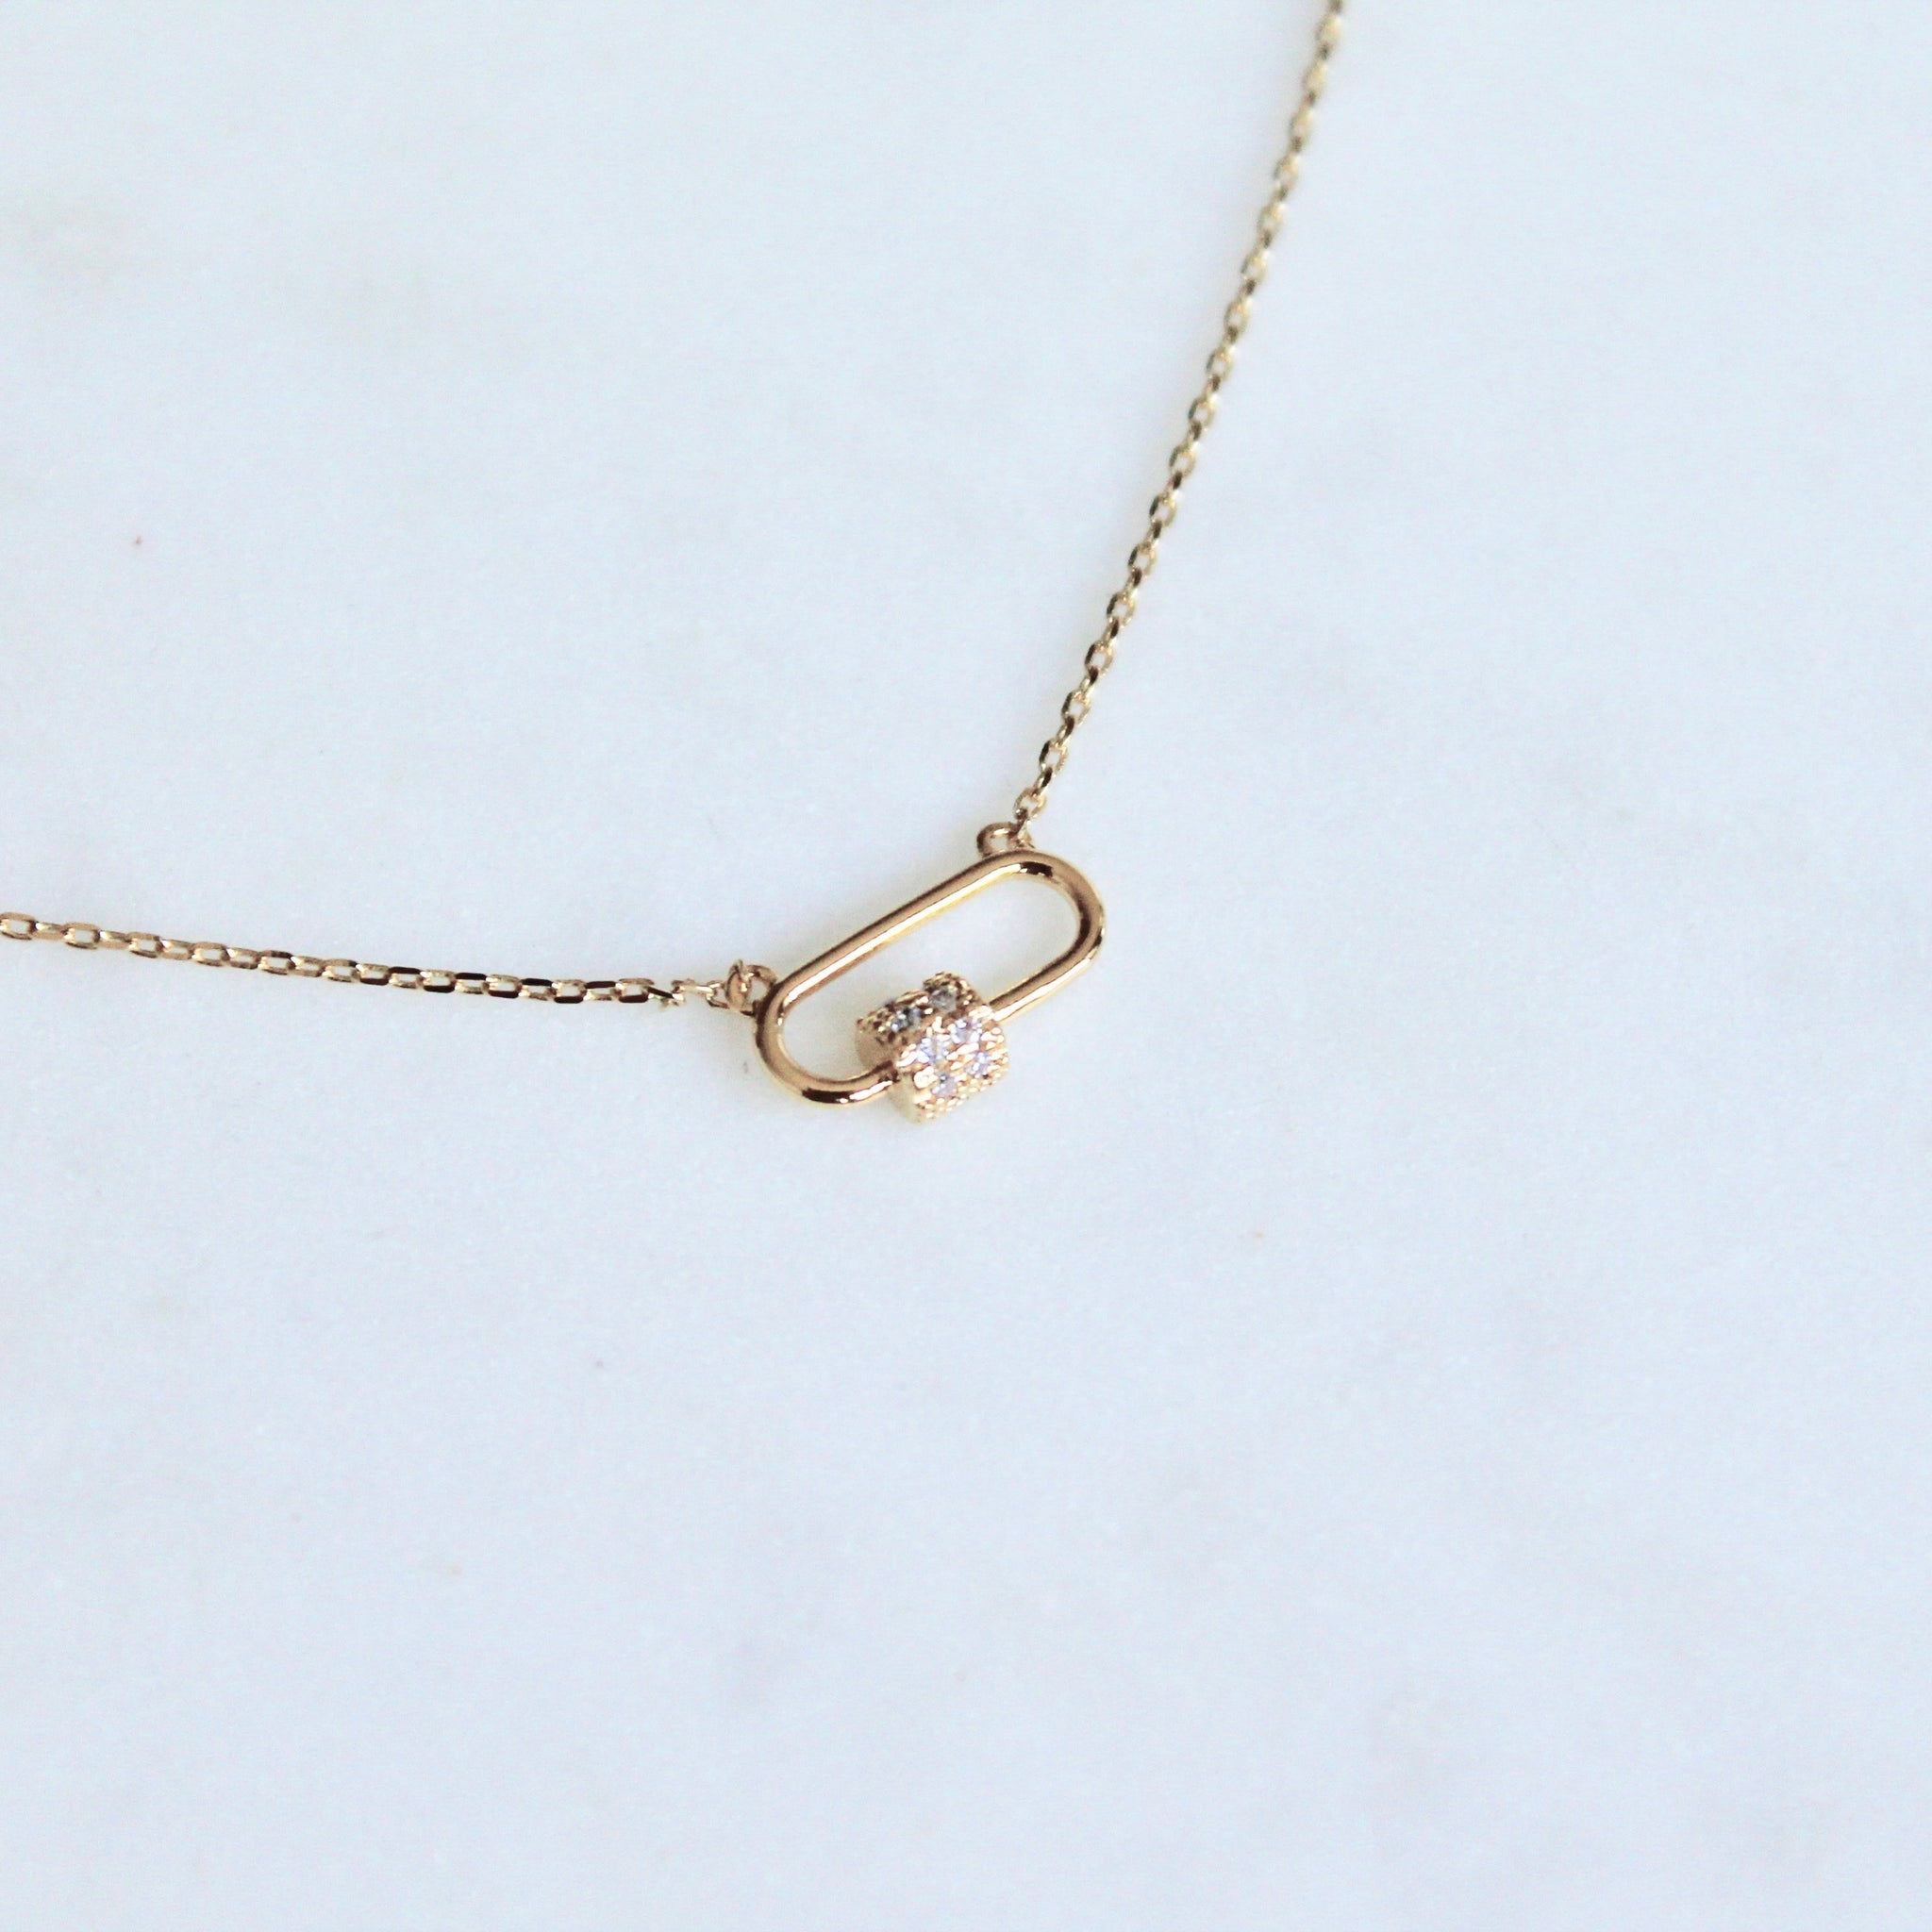 Carabiner lock dainty necklace - Lily Lough Jewelry